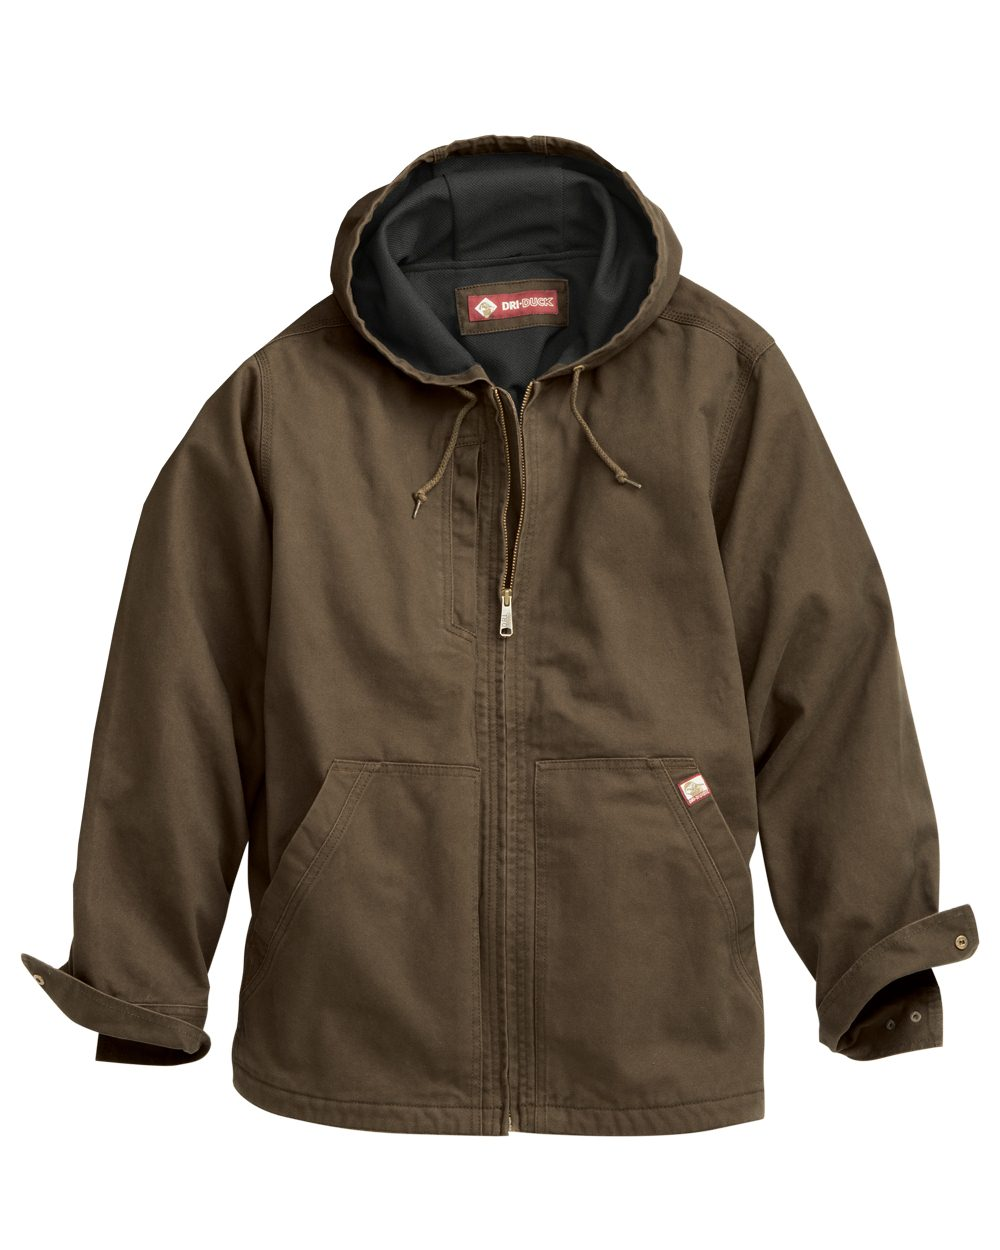 DRI DUCK Laredo Canvas Jacket with Thermal Lining - 5090